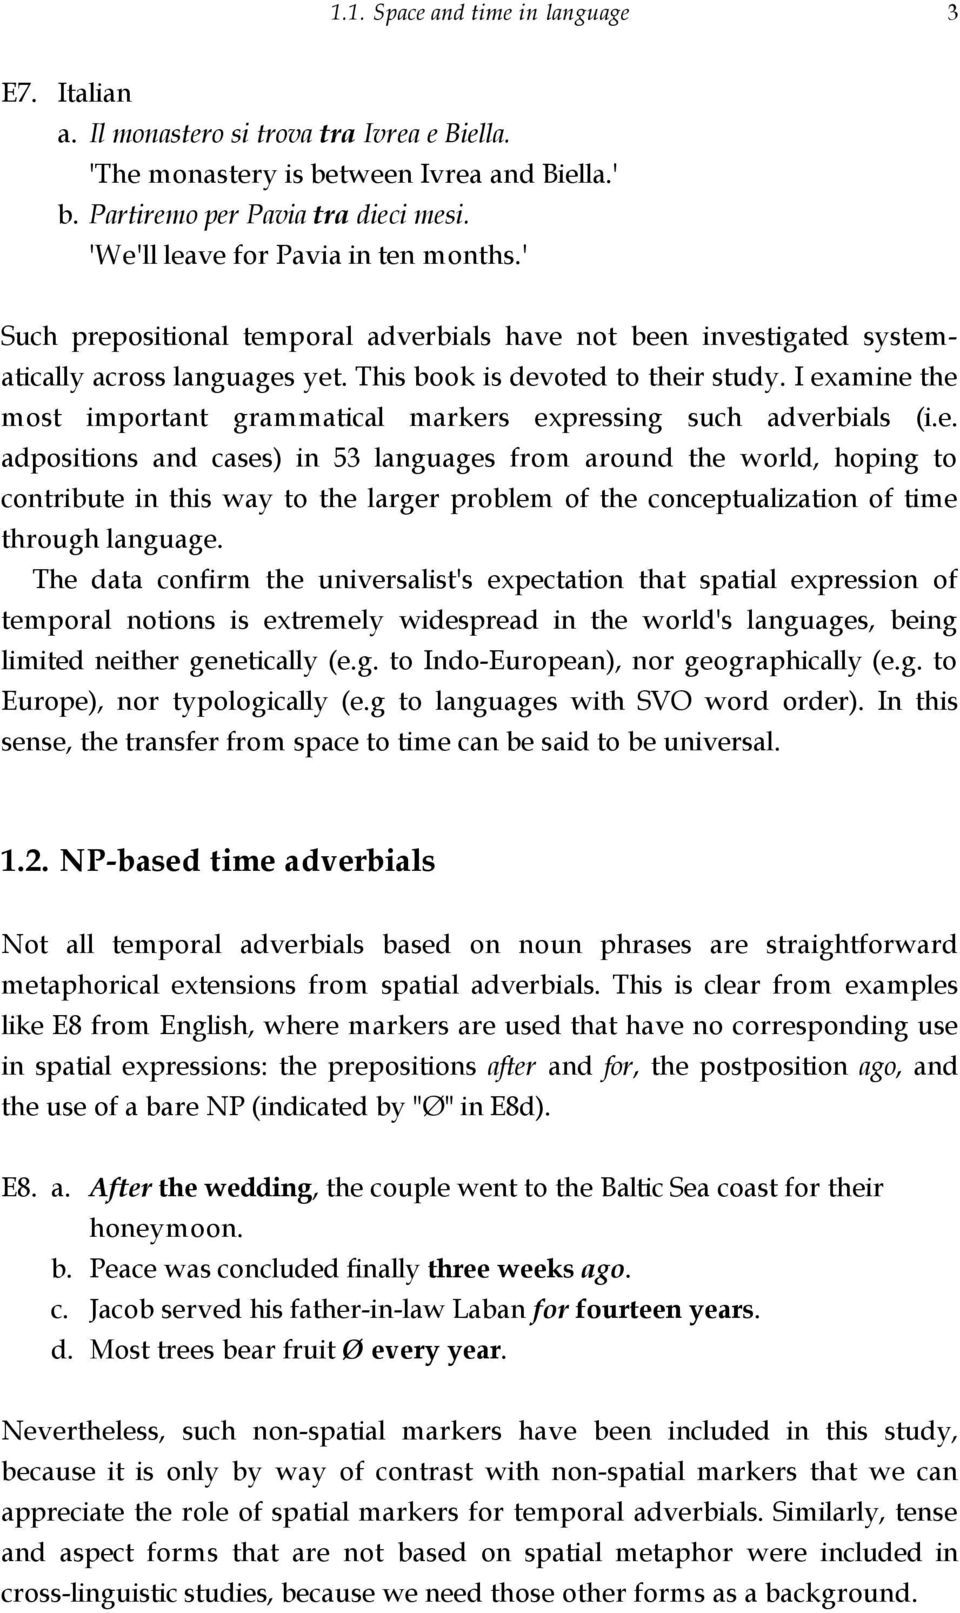 I examine the most important grammatical markers expressing such adverbials (i.e. adpositions and cases) in 53 languages from around the world, hoping to contribute in this way to the larger problem of the conceptualization of time through language.